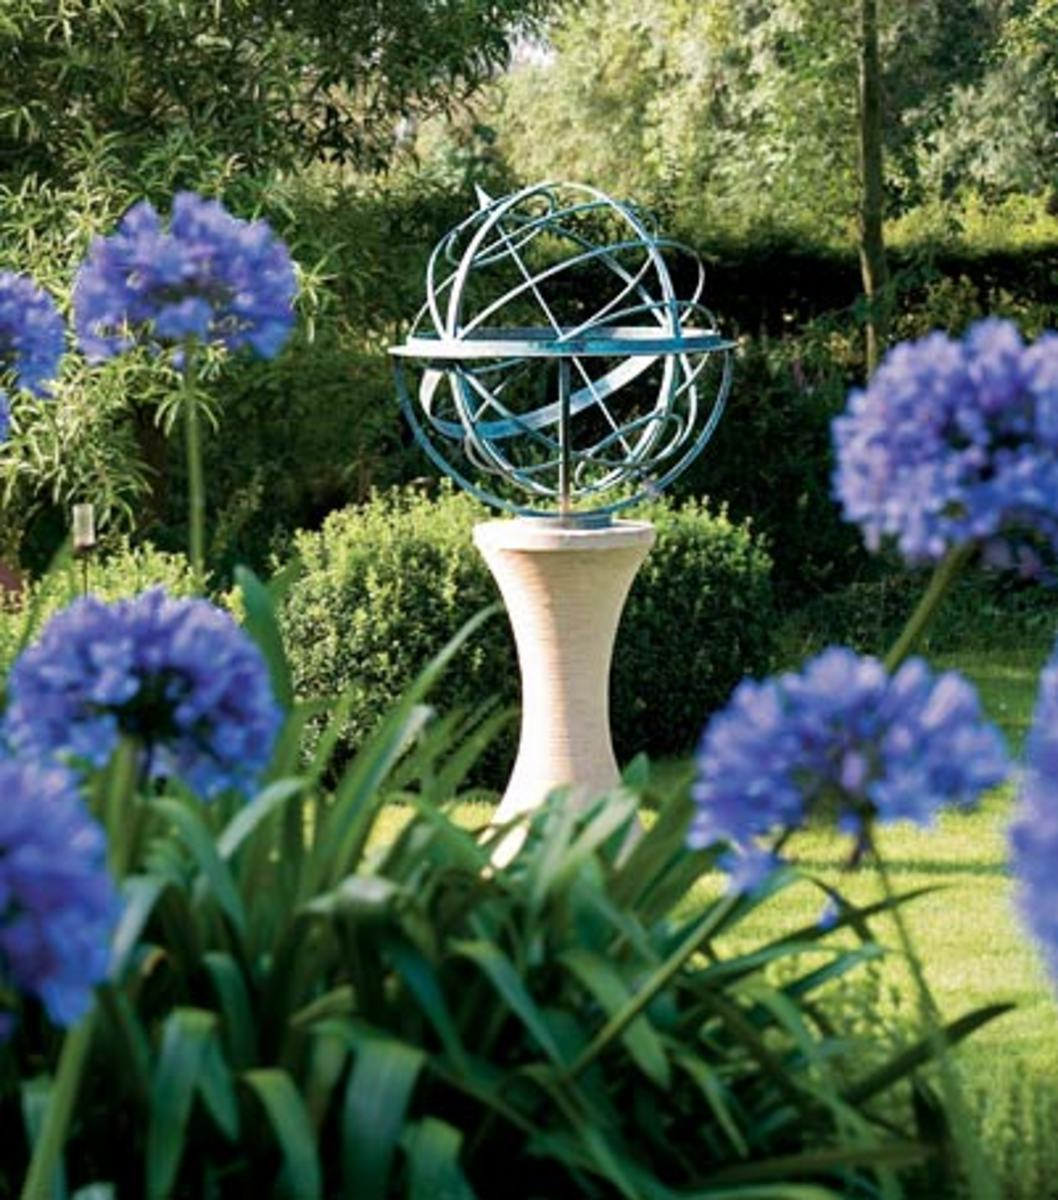 This is another cool, modern landscape ornament. It's eye catching design draws attention and it's rounded shape is mirrored in the round, purple flower blooms of the bushes around it.